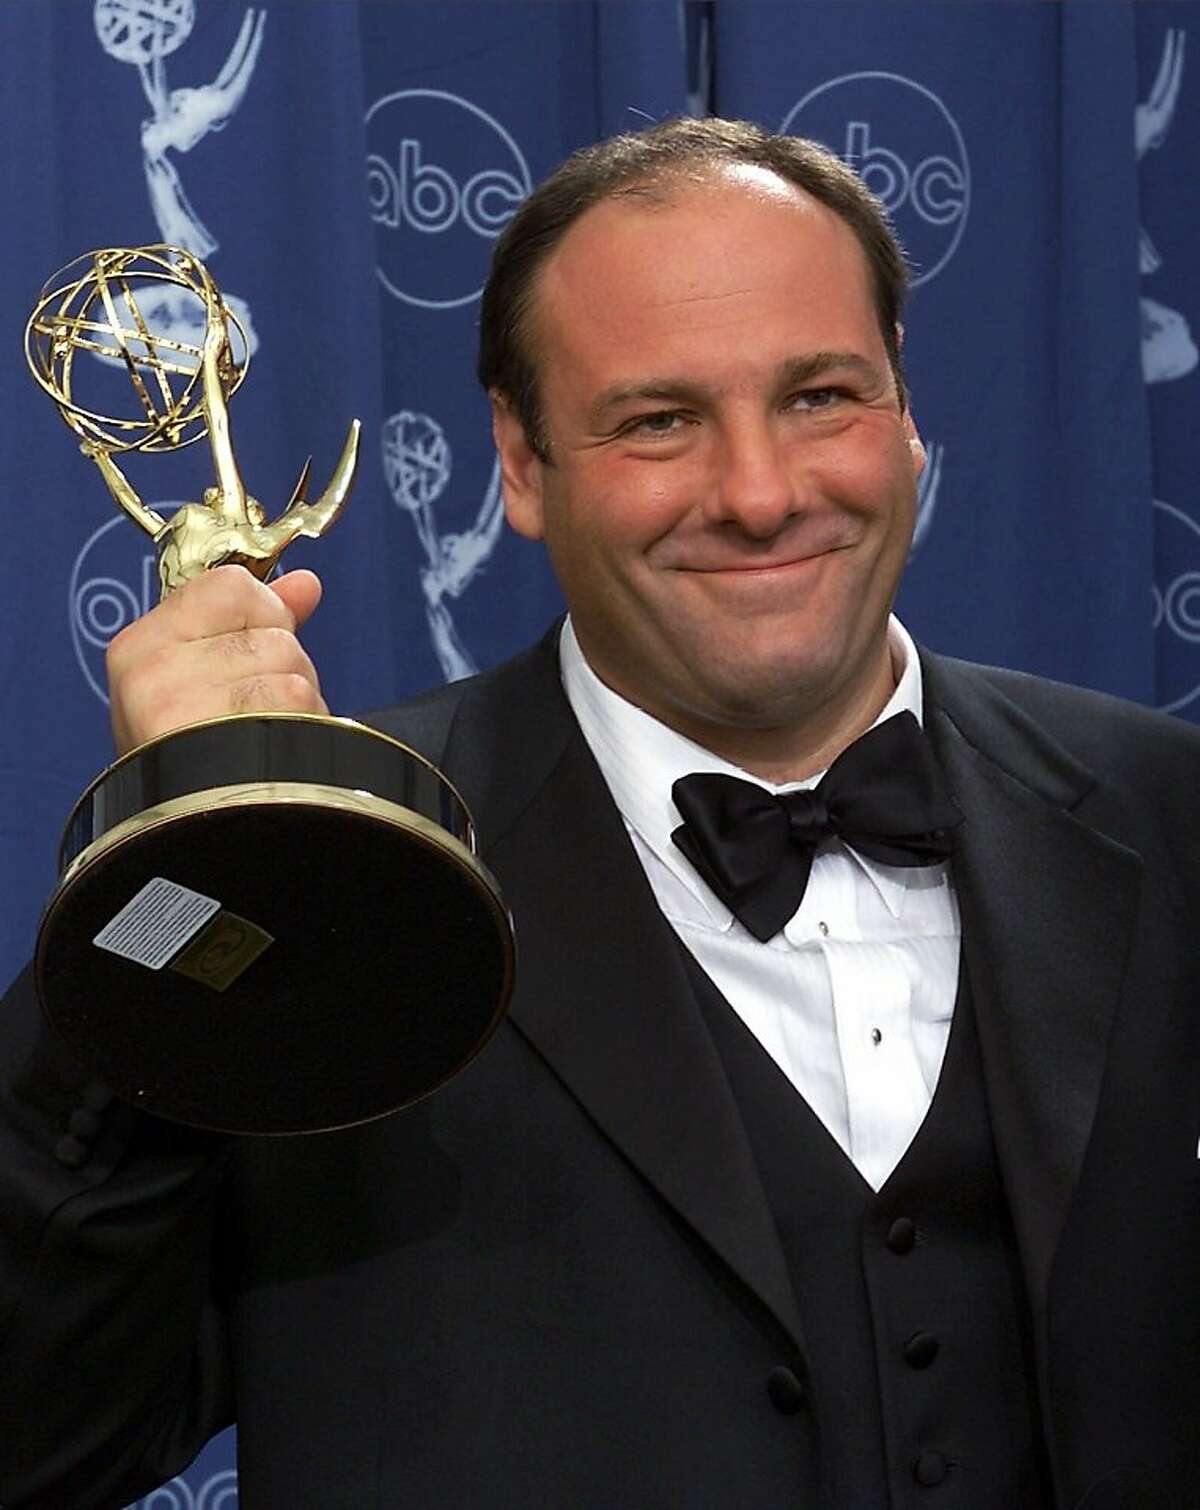 """This Sept. 10, 2000 file photo shows actor James Gandolfini with his award for outstanding lead in a drama series for his work in """"The Sopranos"""" at the 52nd Annual Primetime Emmy Awards in Los Angeles. HBO and the managers for Gandolfini say the actor died Wednesday, June 19, 2013, in Italy. He was 51."""